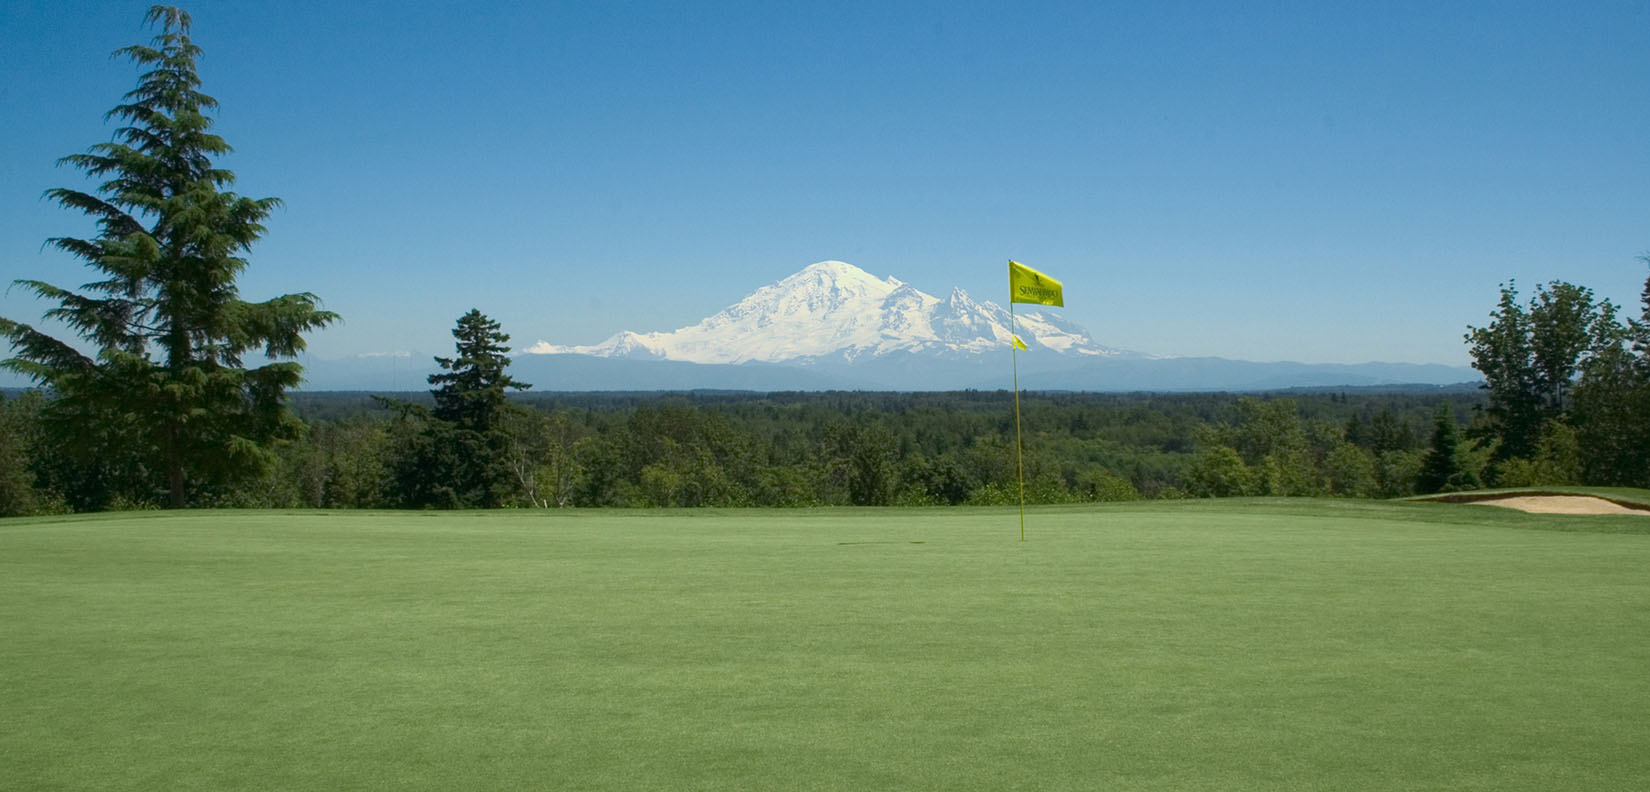 golf green and mt rainier